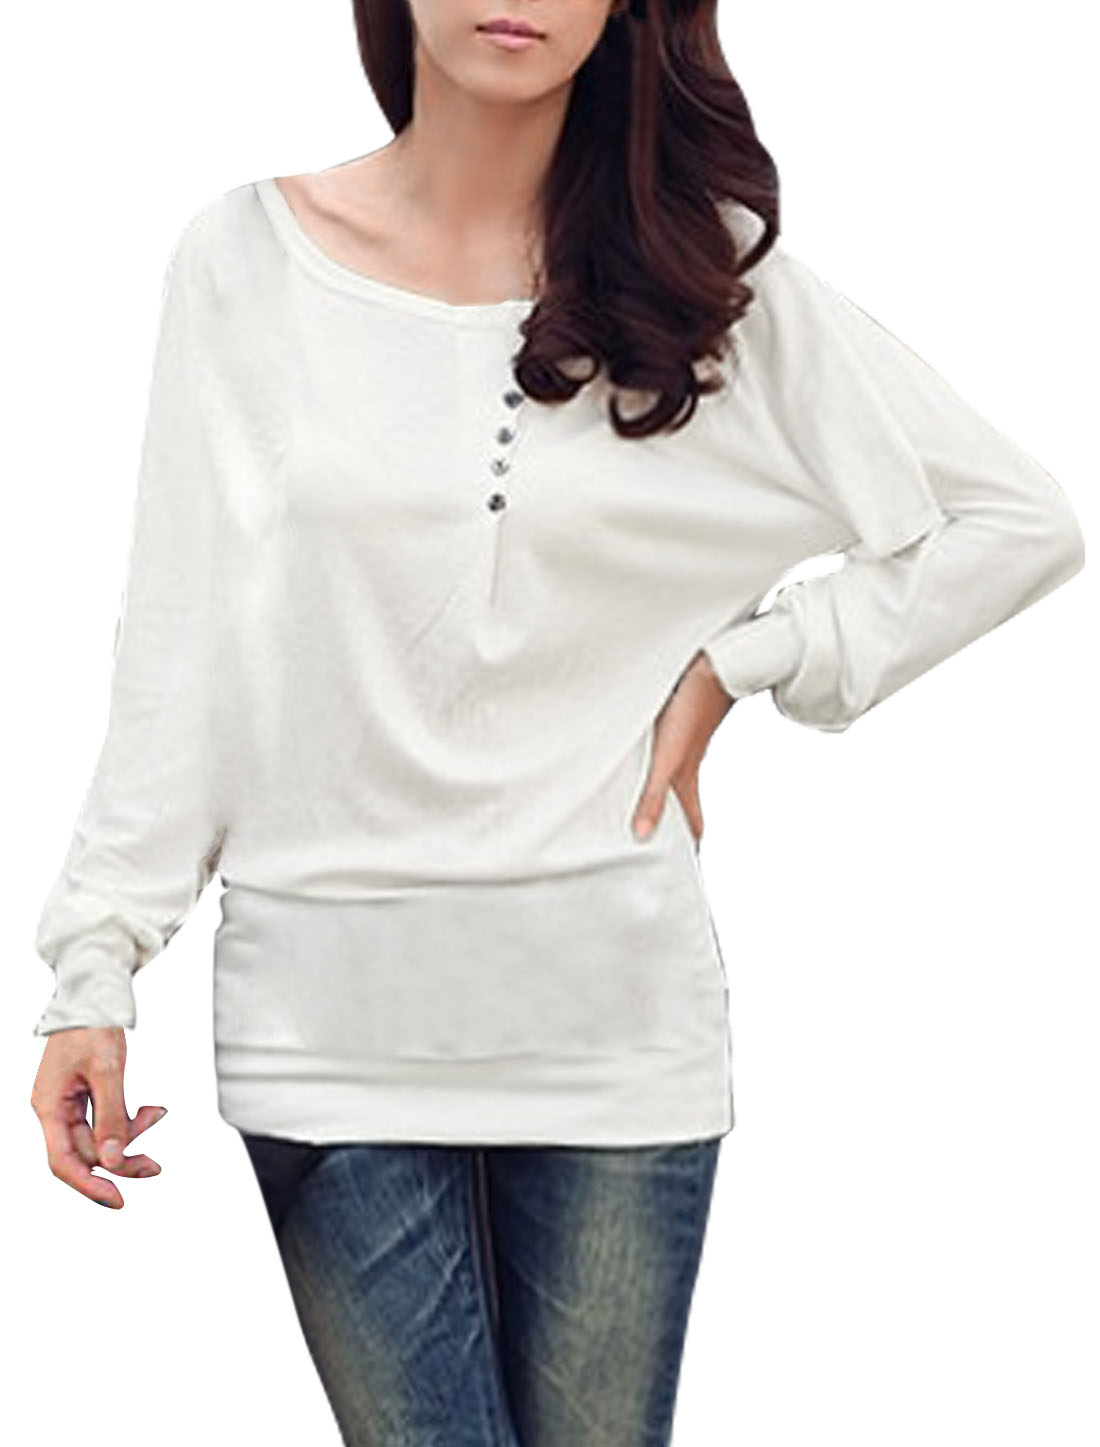 White Batwing Style Long Sleeve Boat Neck Autumn Shirt XS for Women